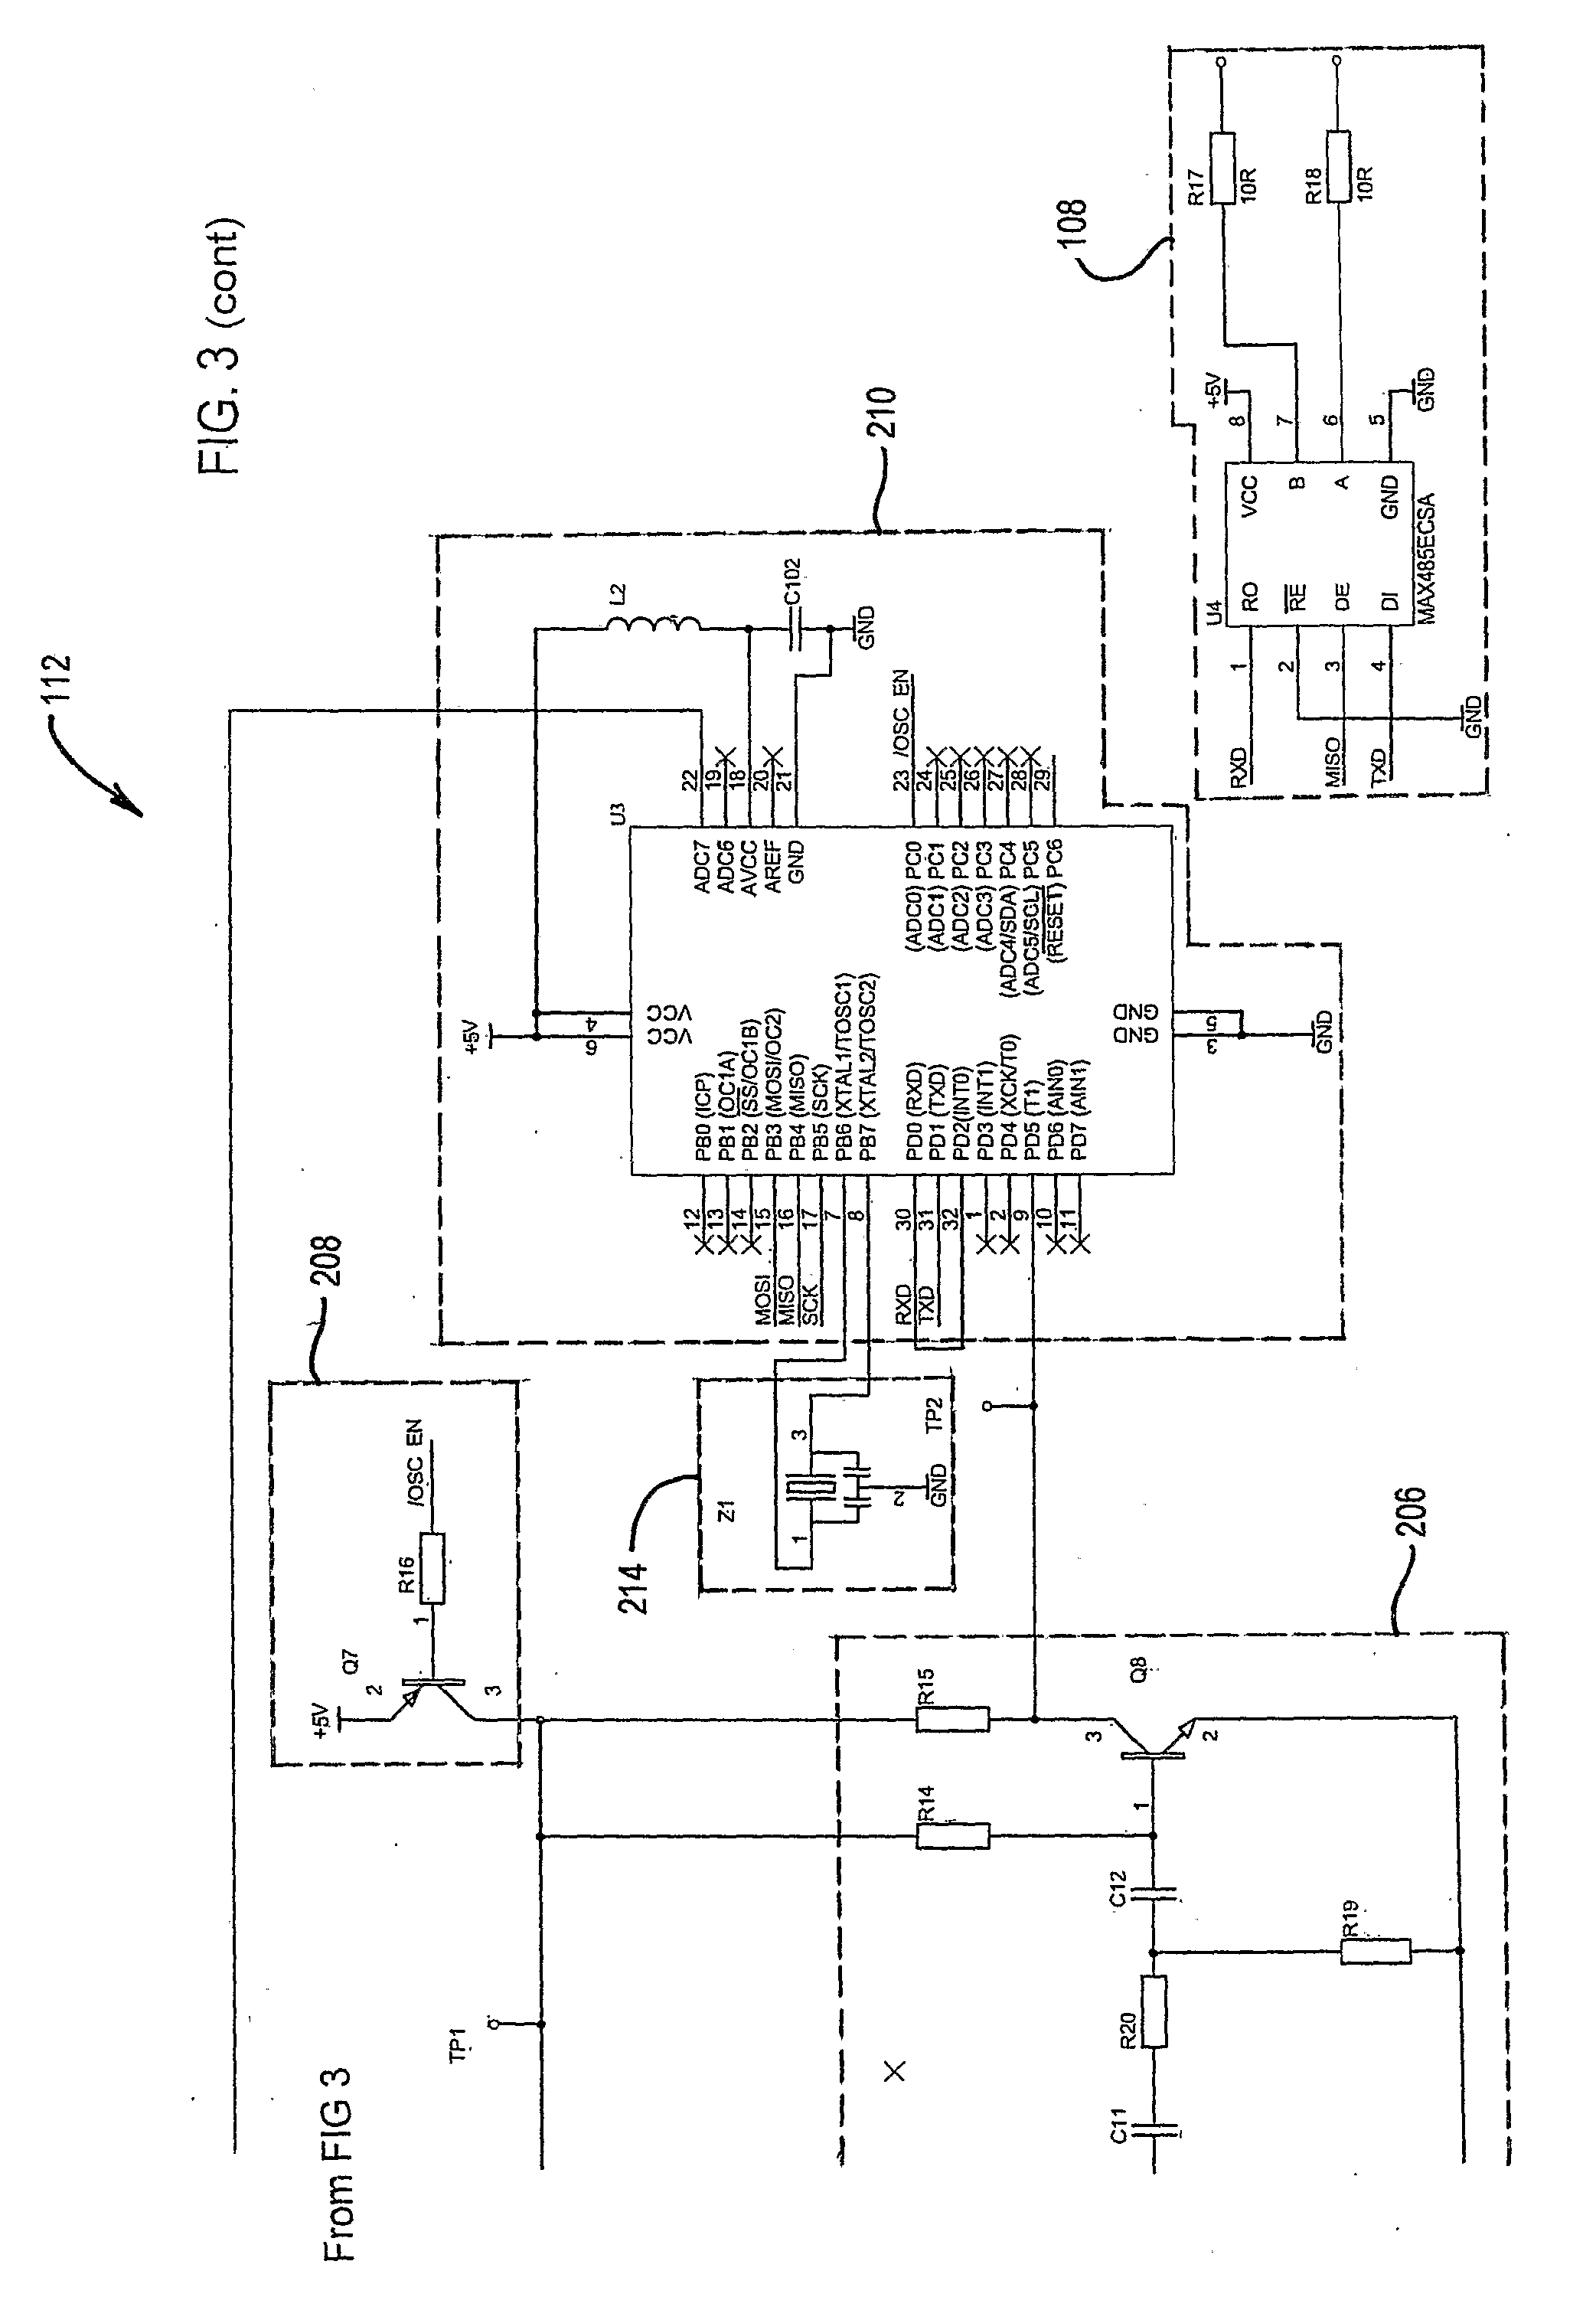 Us20090302870 Soil Moisture Sensor With Data Tester Circuit Schematic Patent Drawing